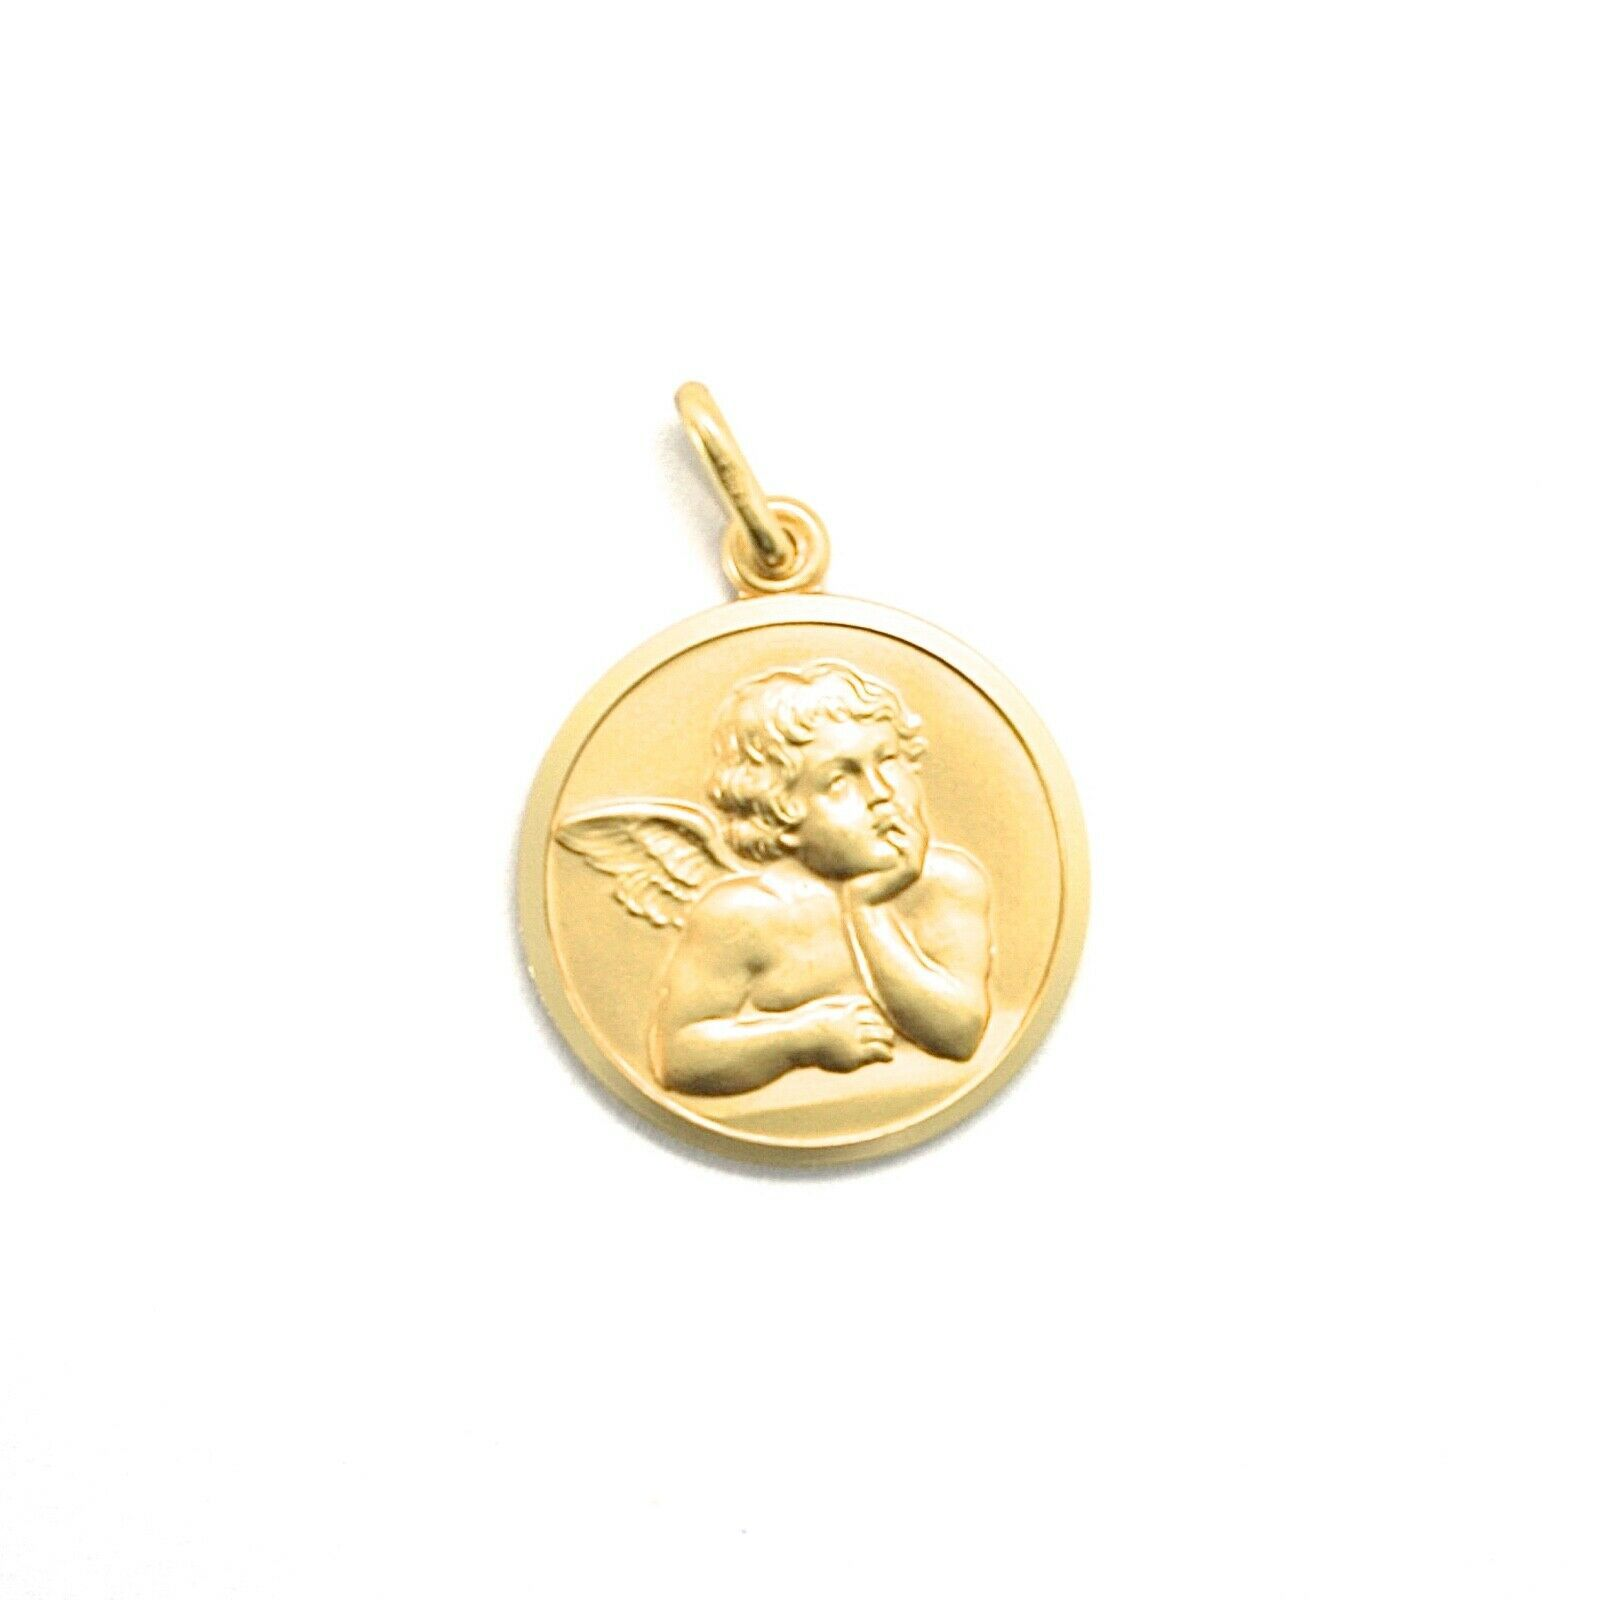 SOLID 18K YELLOW GOLD MEDAL, GUARDIAN ANGEL, 11 mm DIAMETER, VERY DETAILED